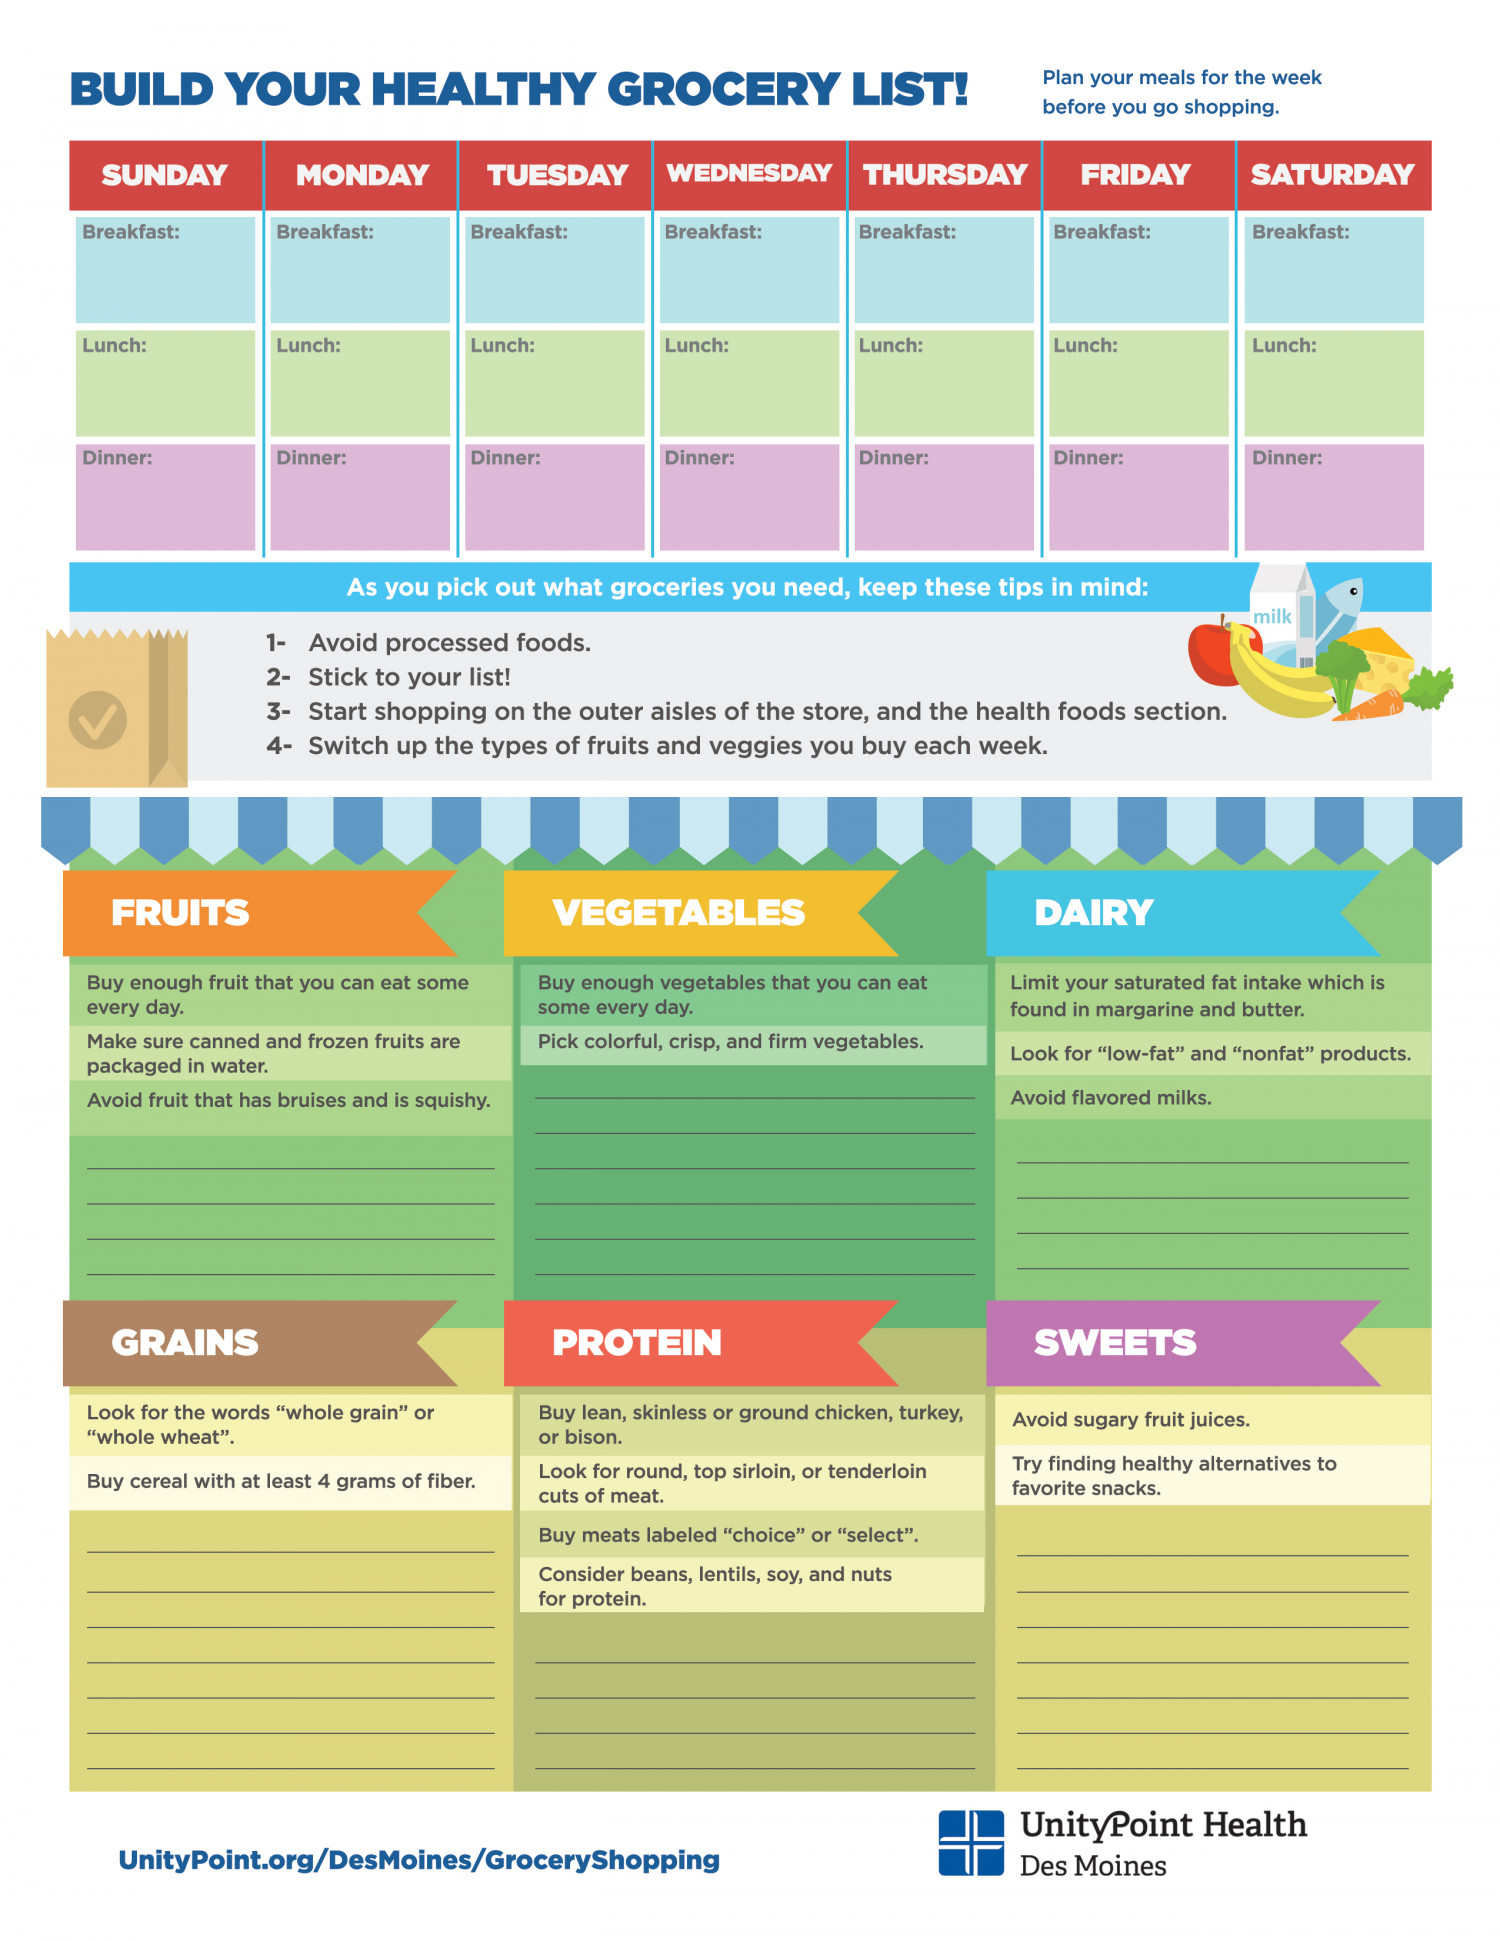 Building A Healthy Grocery List (Infographic) Infographic